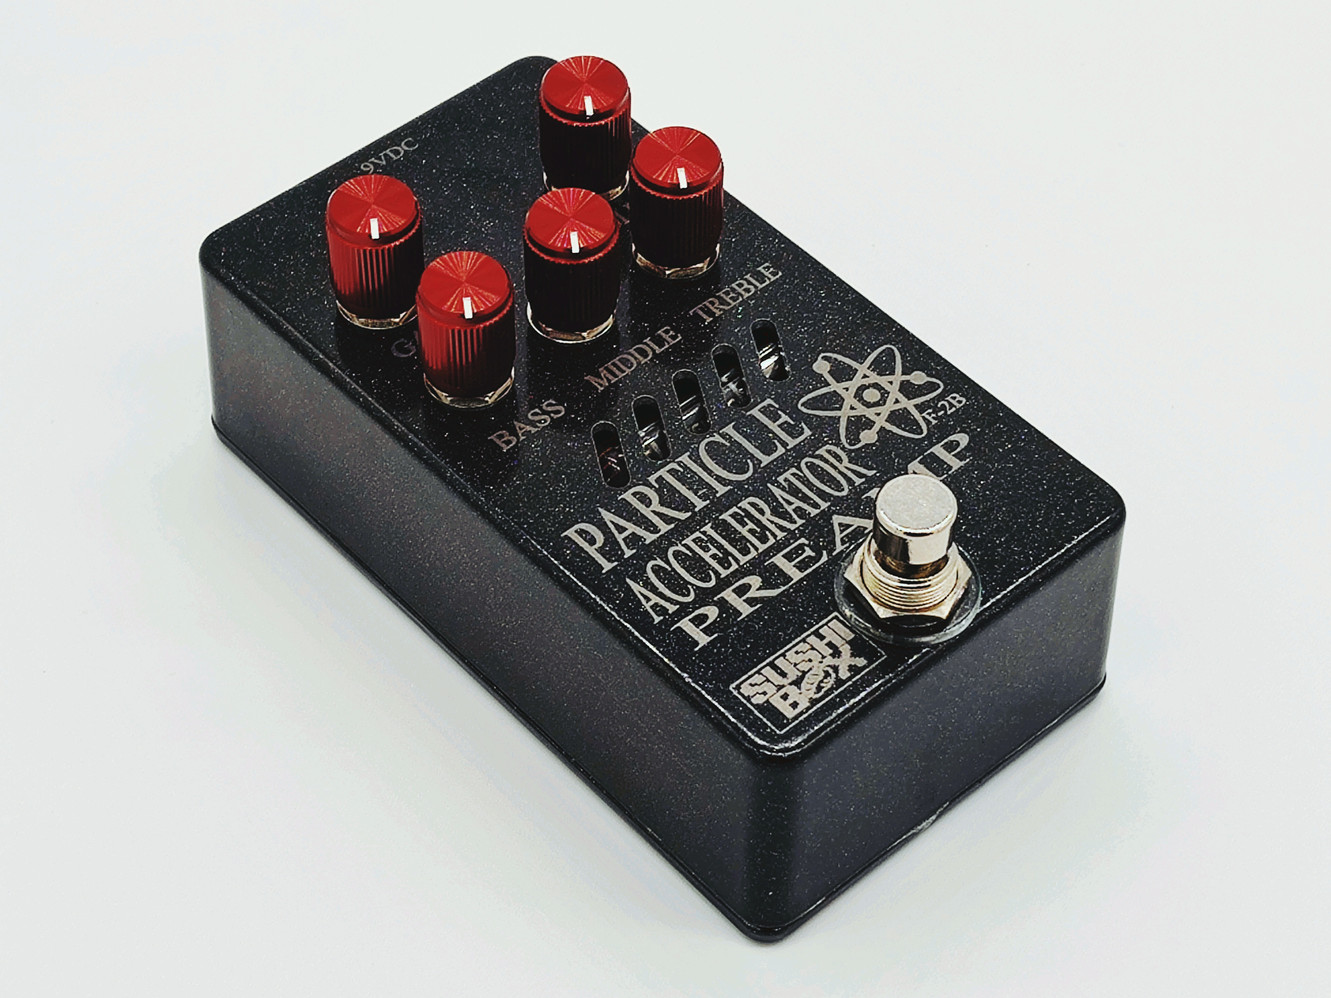 Metallic Black Enclosure with Red Knobs